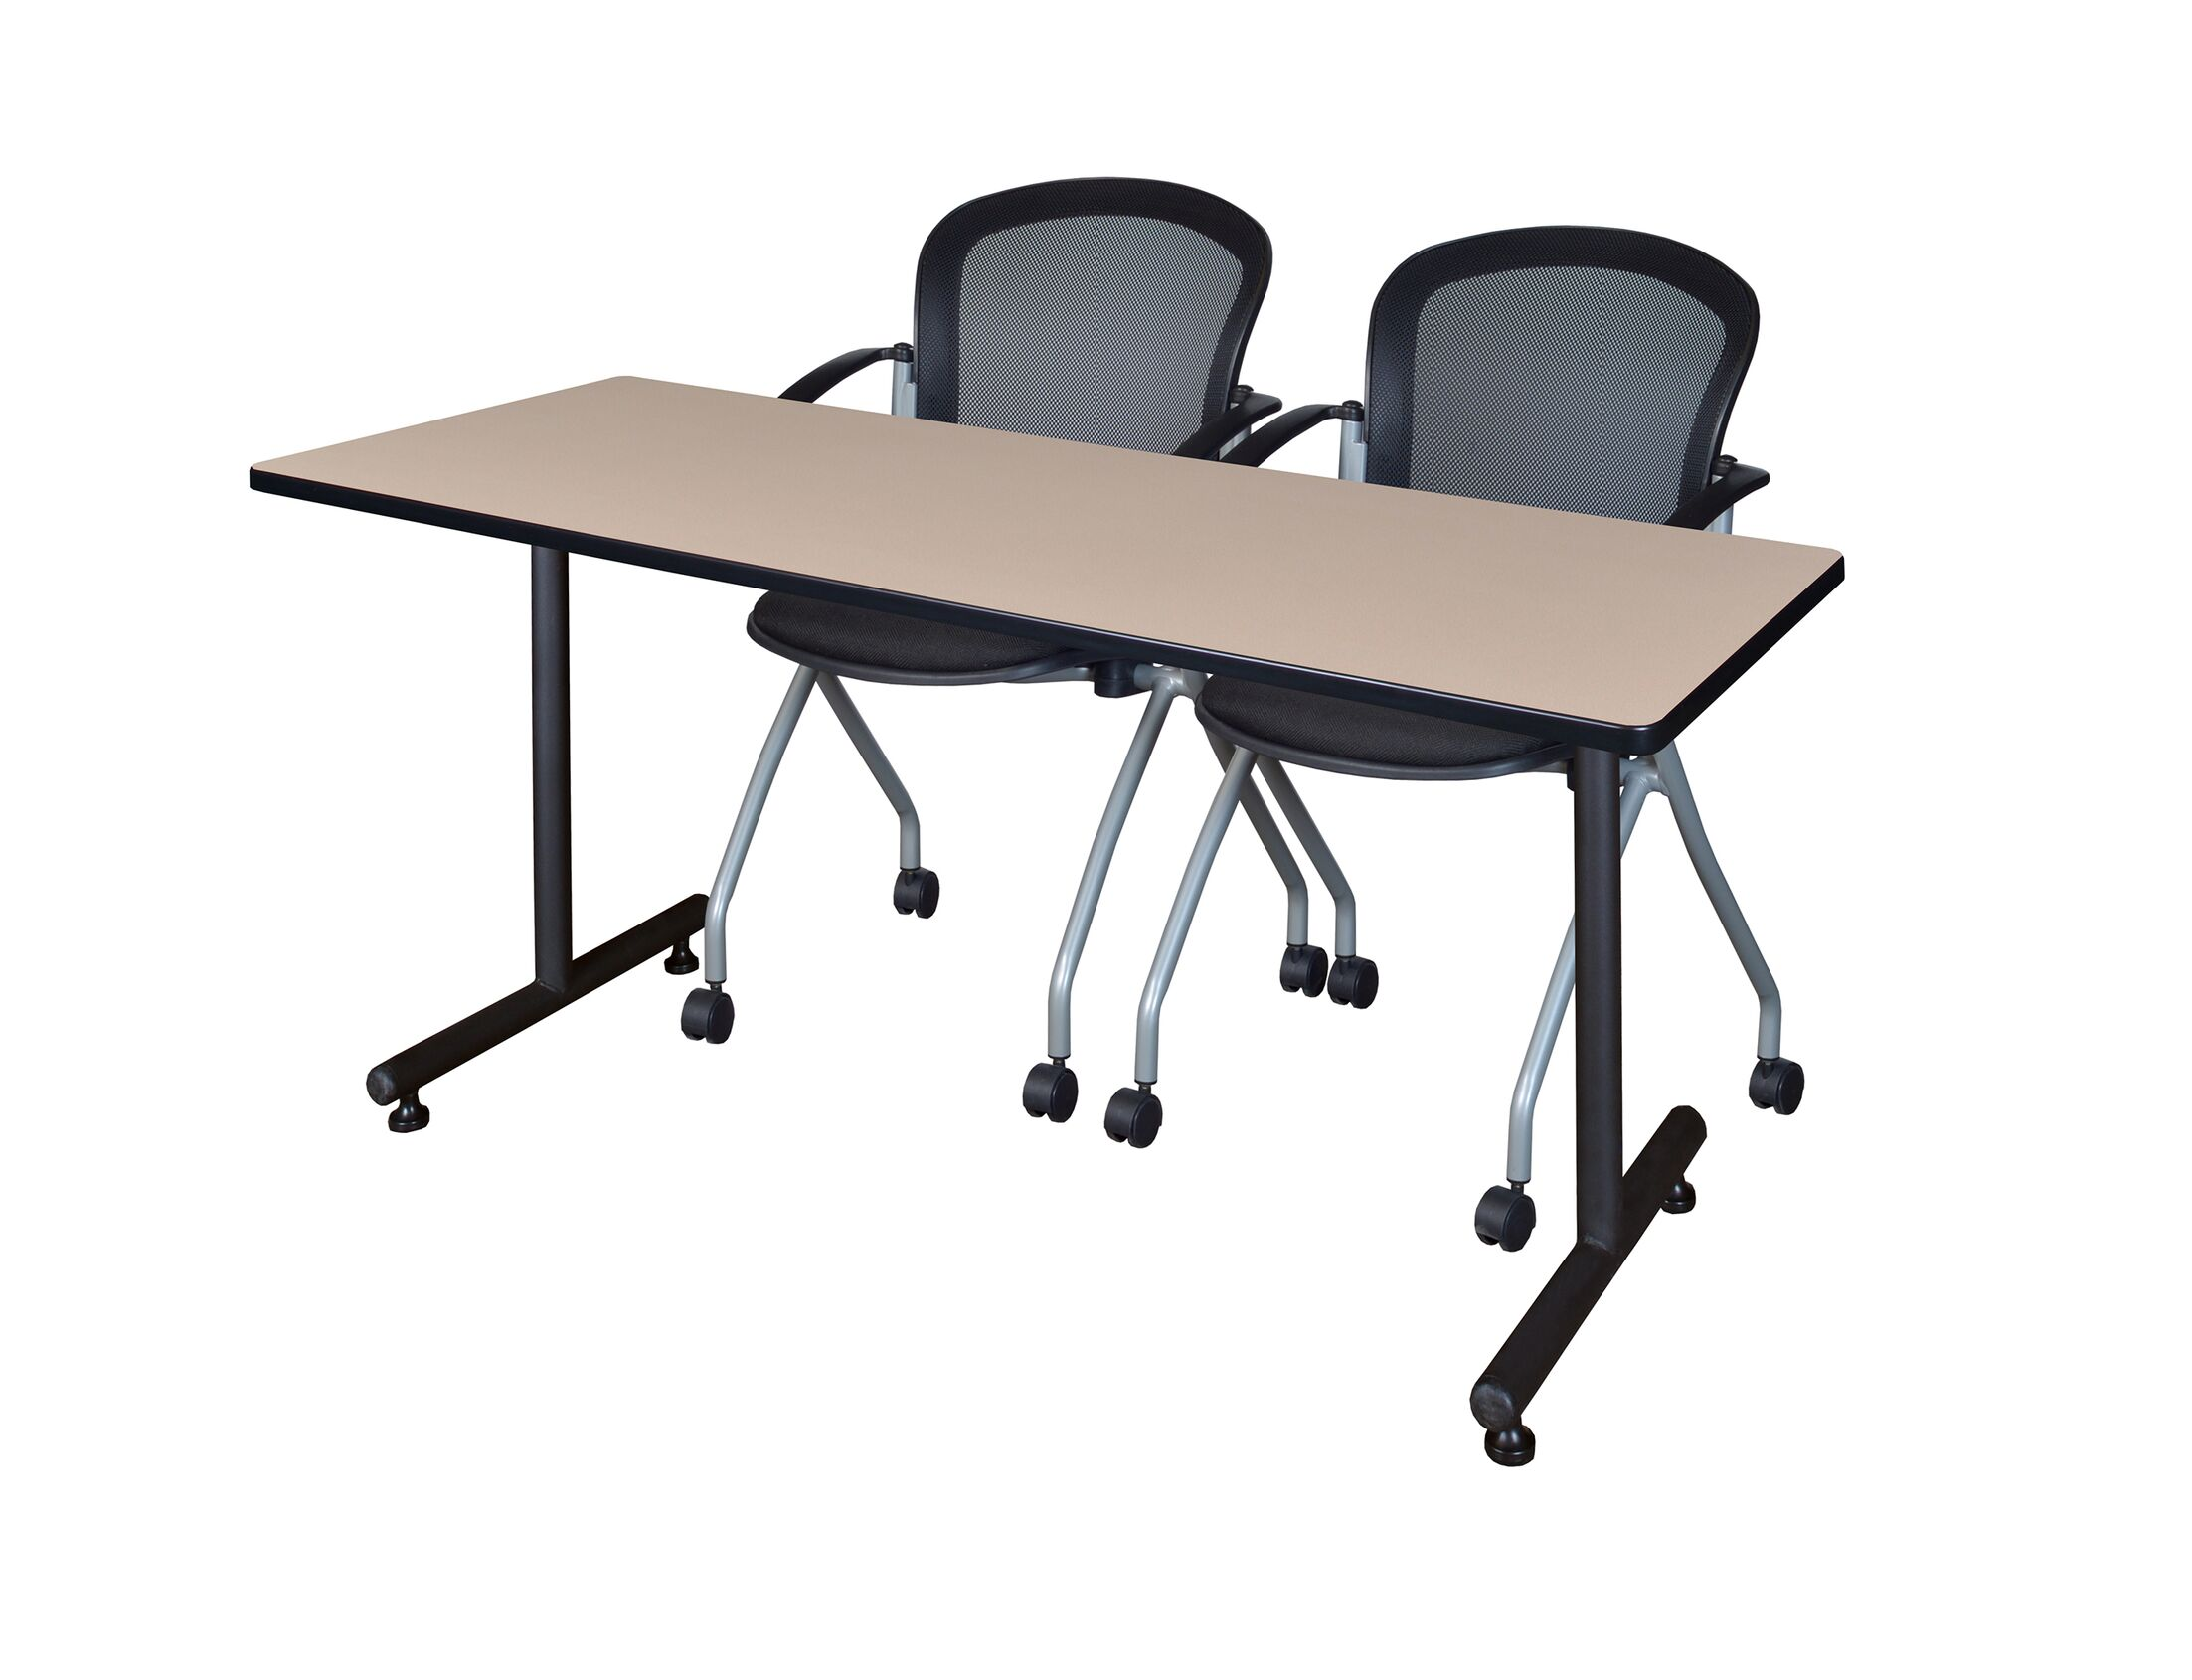 Marin Training Table with Wheels Size: 29